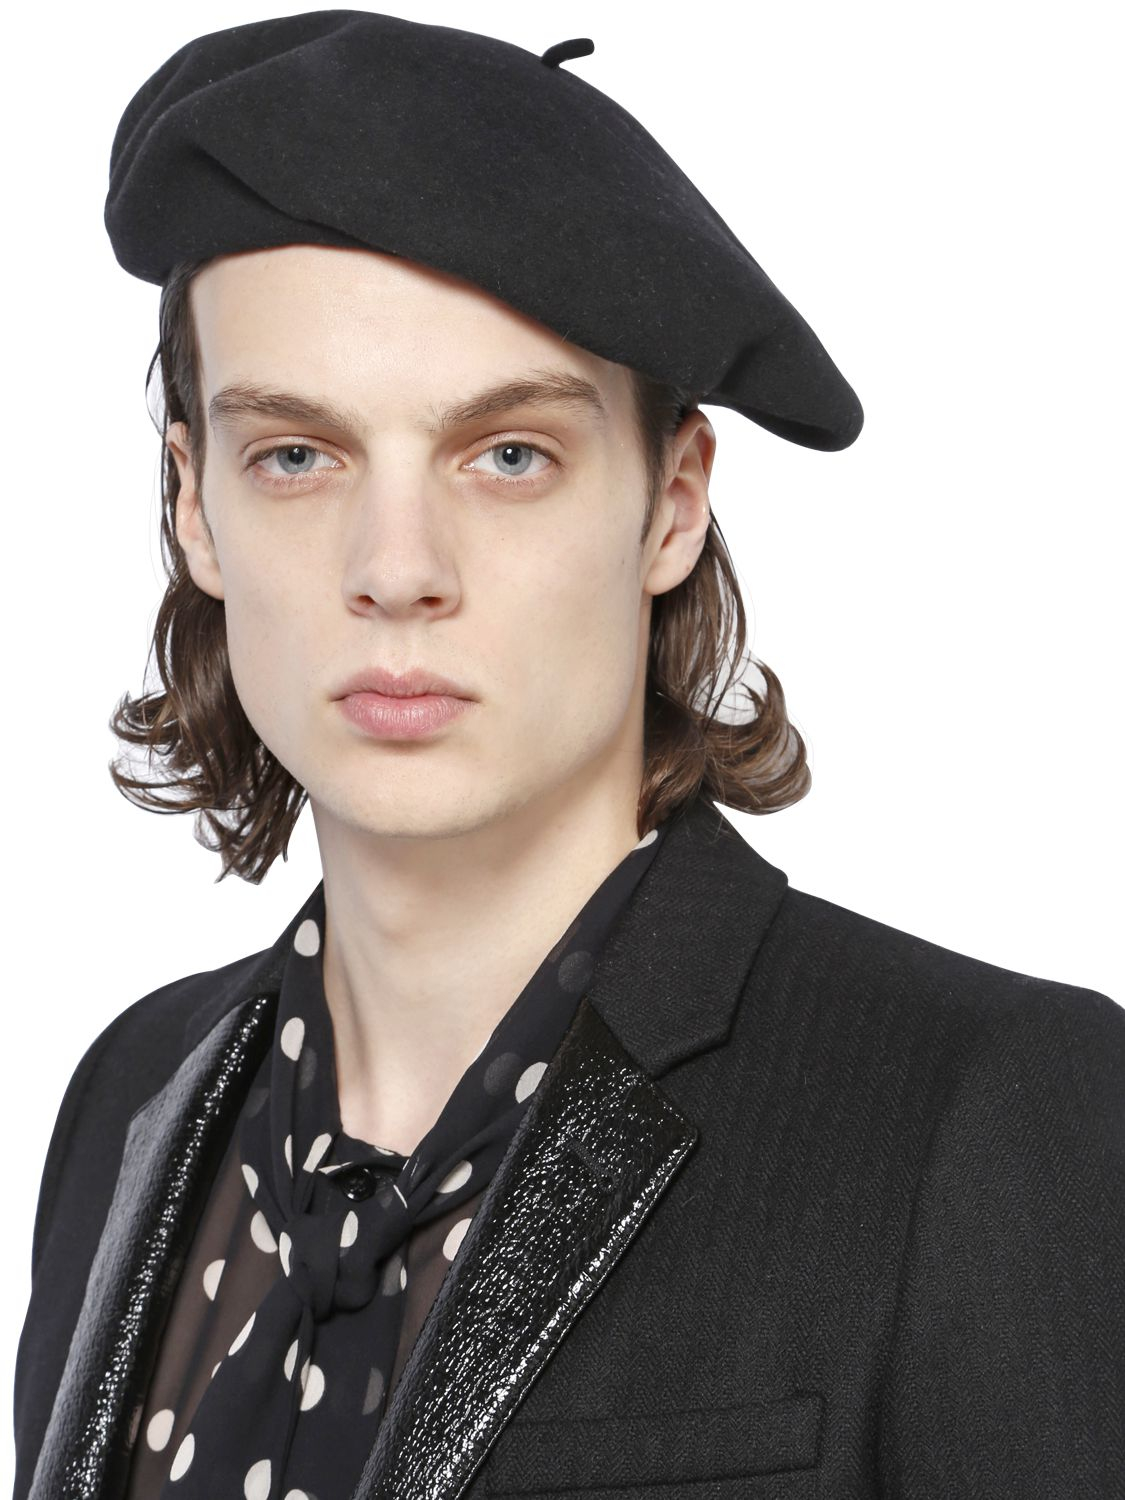 Lyst - Saint Laurent Wool Felt Beret in Black for Men 399d29b9669